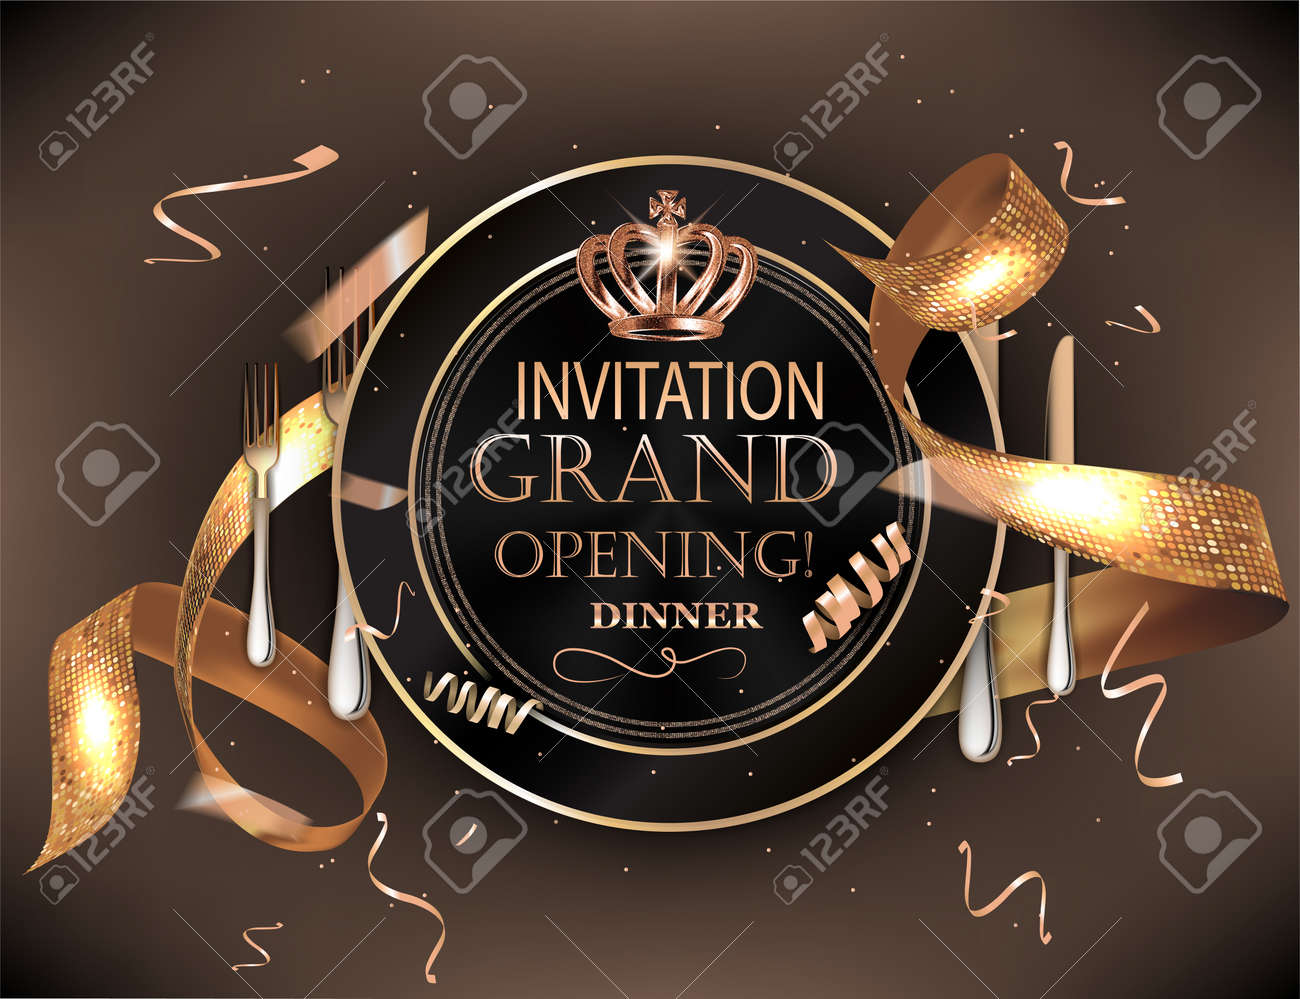 Grand Opening Dinner Invitation Card With Cold Confetti Plate